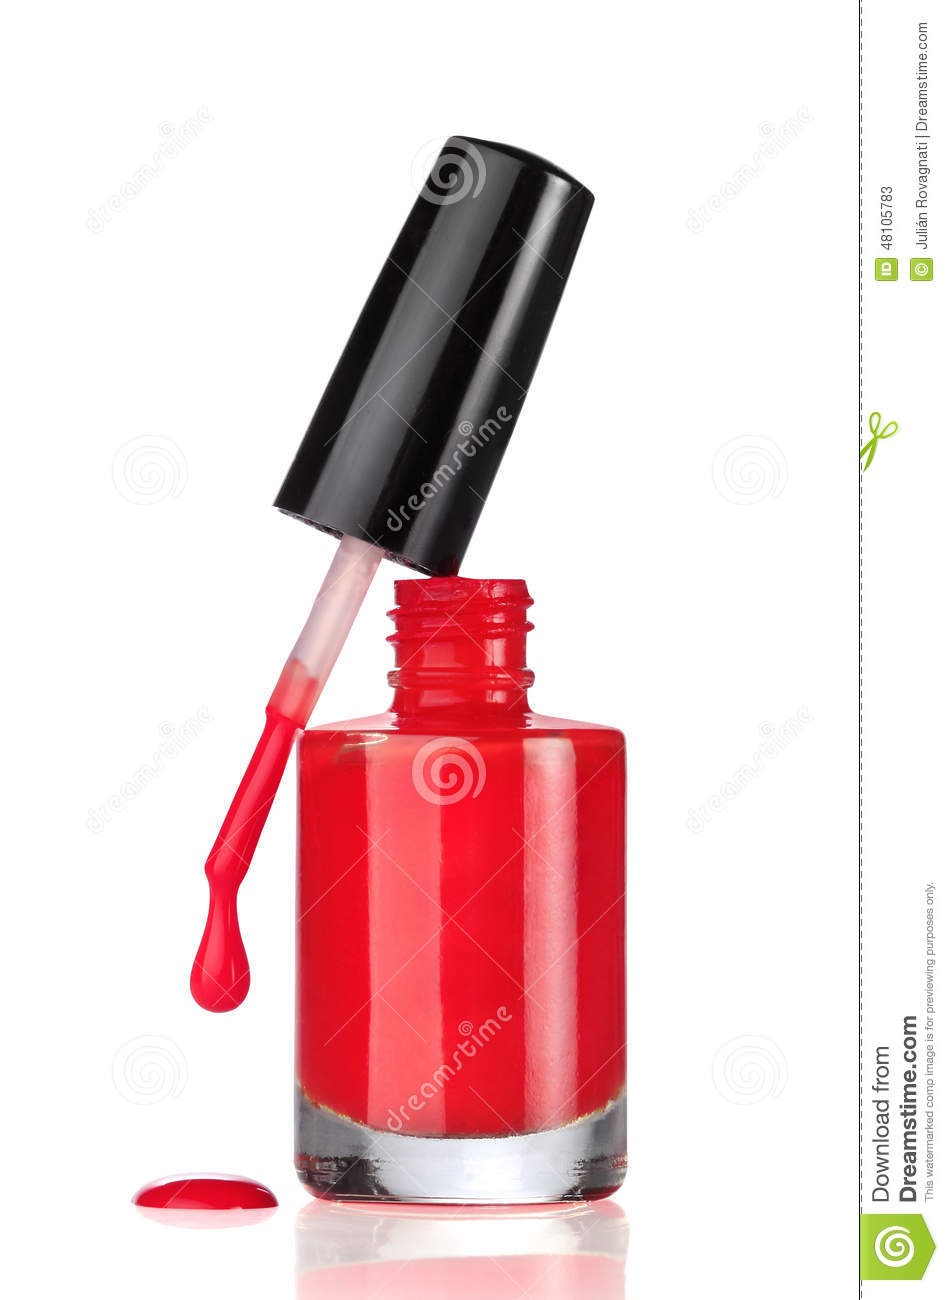 Red Nail Polish Bottle With Drop On White Stock Image - Image of ...